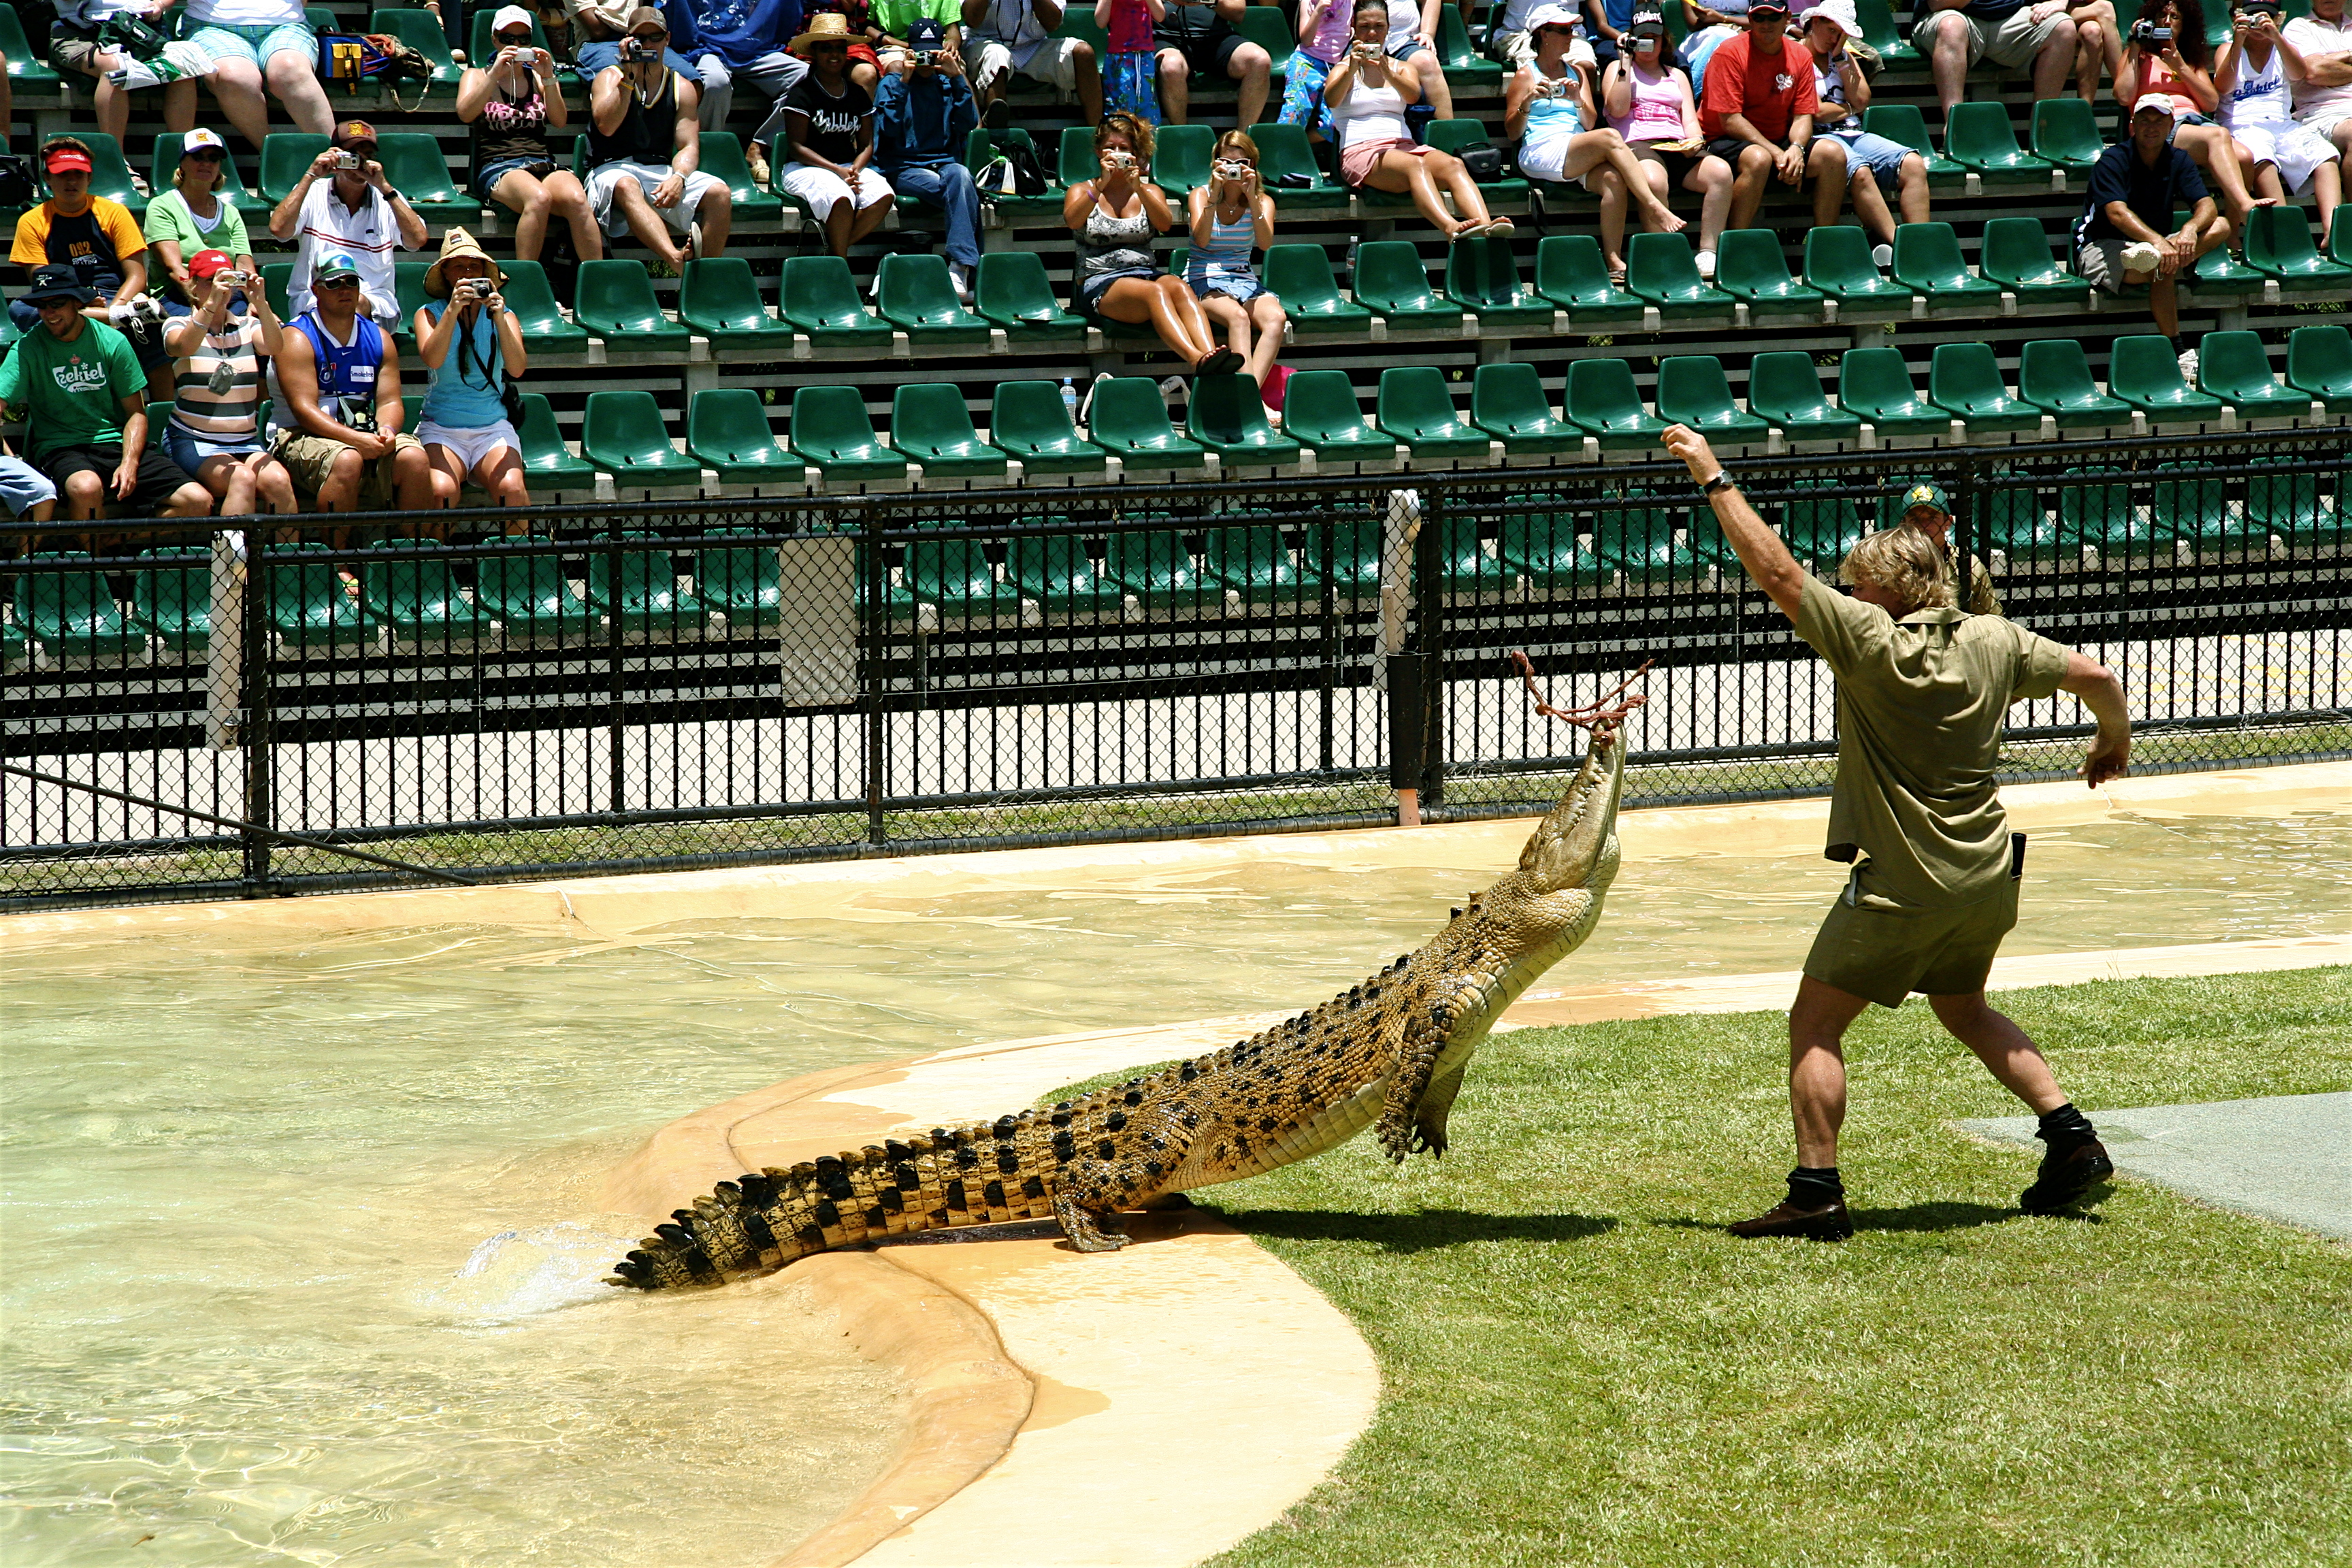 44 Wild Facts About Steve Irwin The Crocodile Hunter Page 2 Of 44